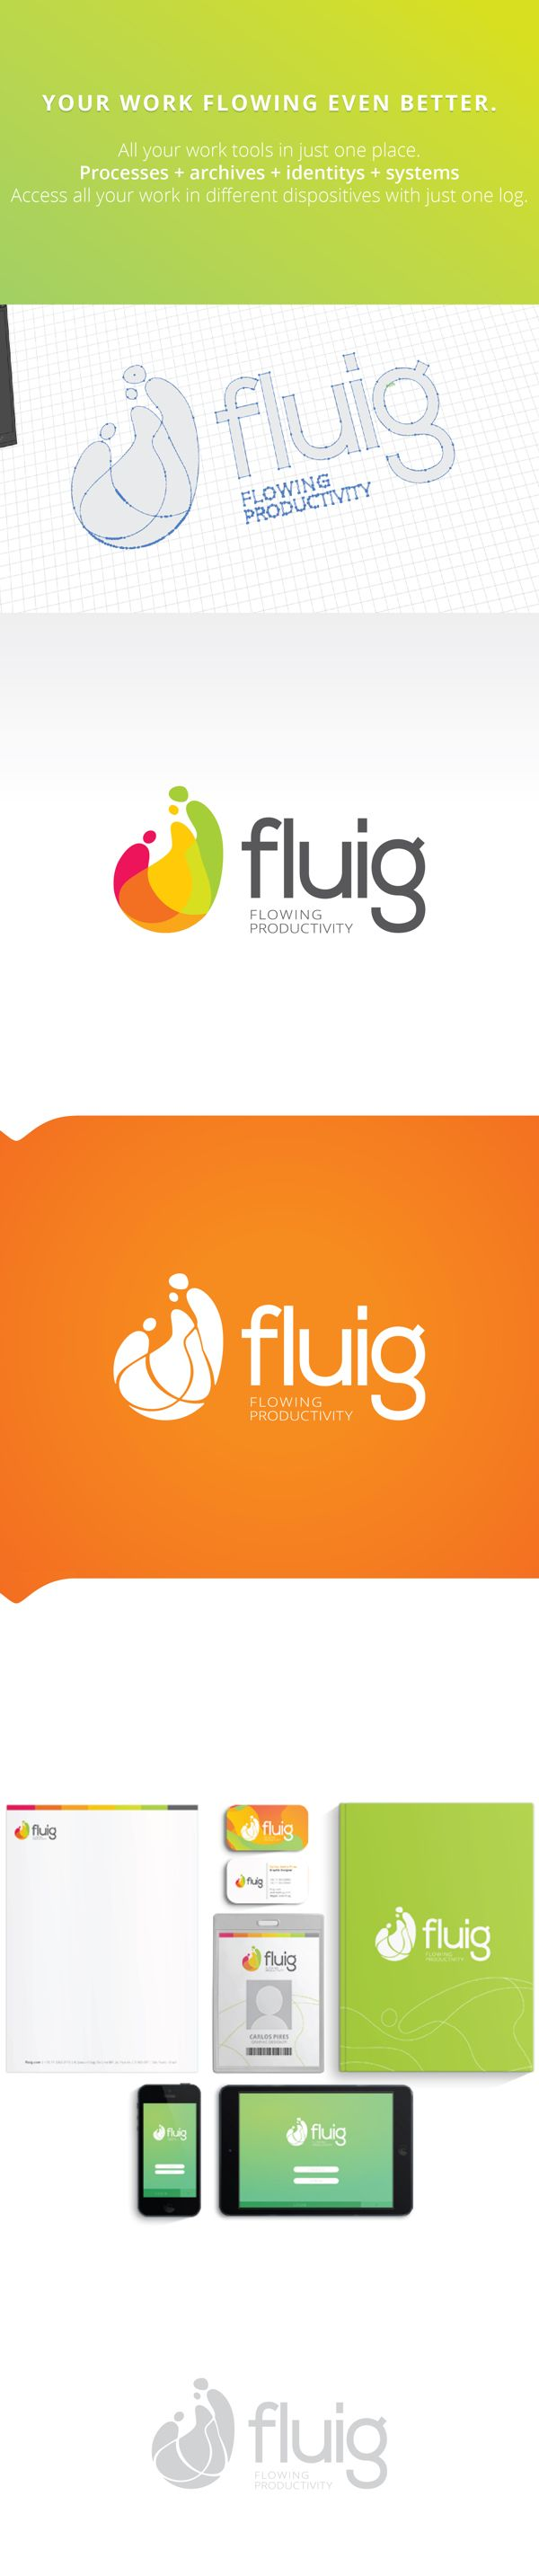 Fluig [Identity] on Behance  More: https://www.facebook.com/pages/OMGbrandme/236112833194819